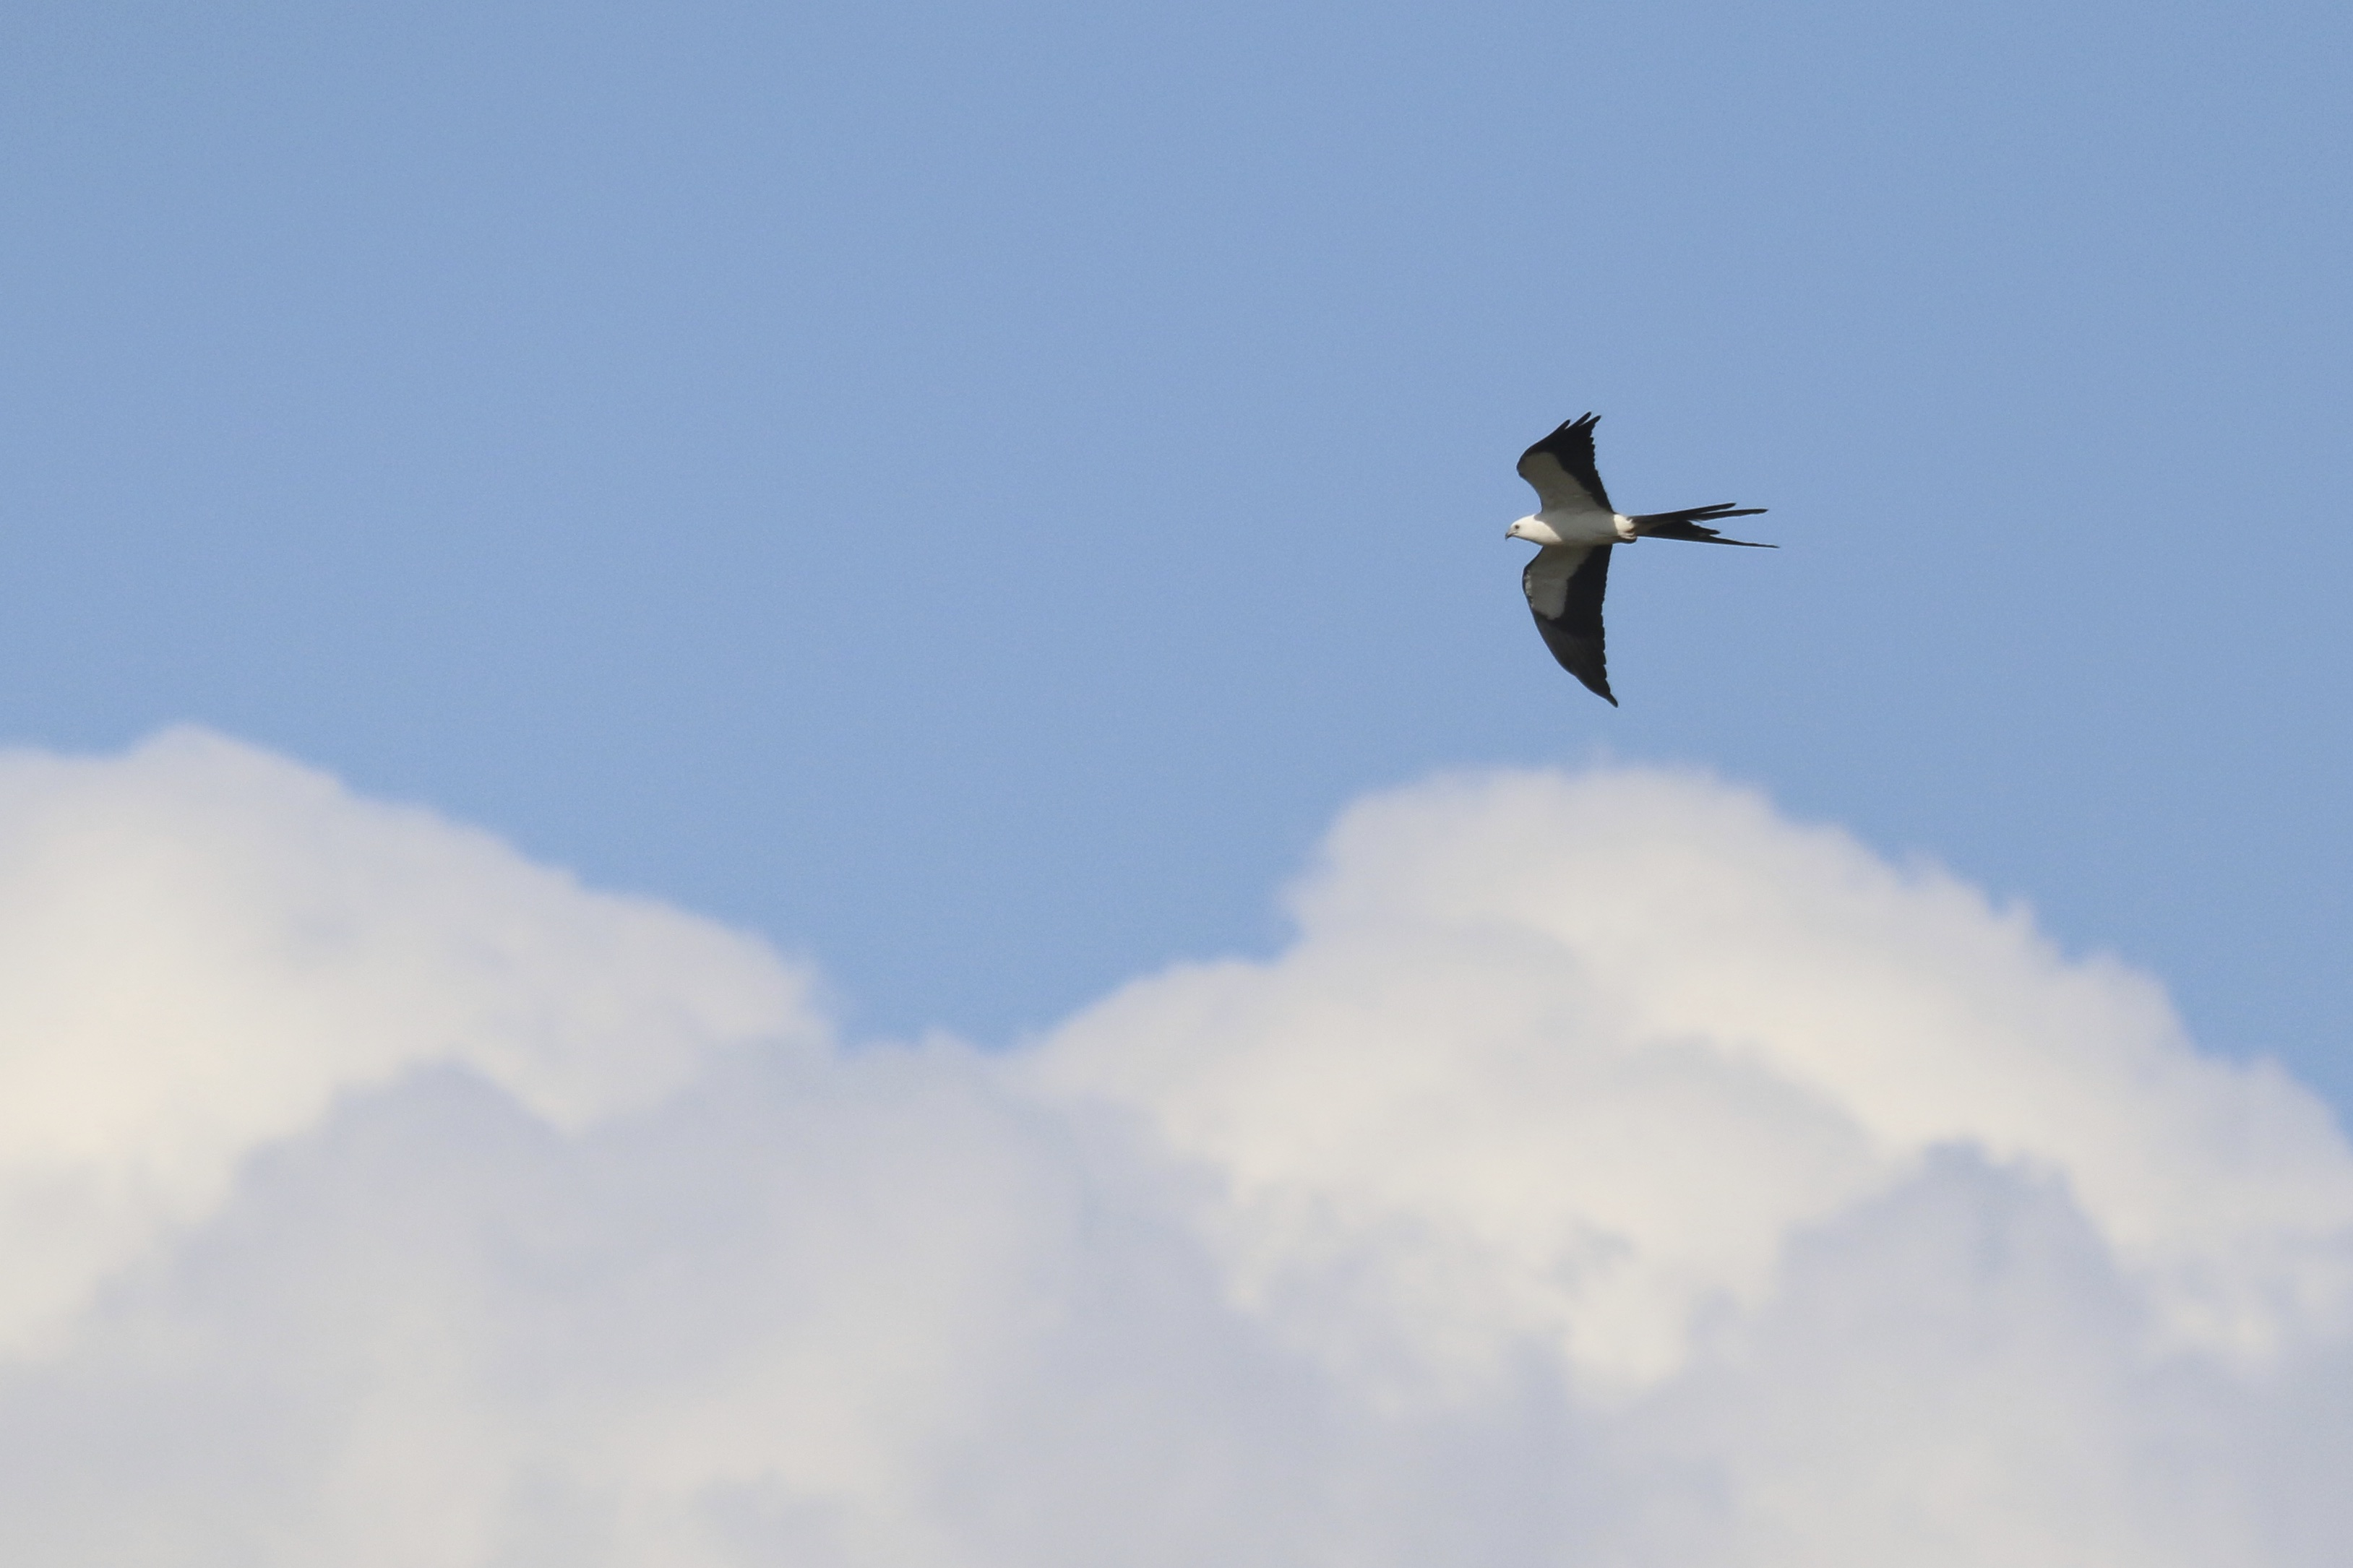 ~A Swallow-tailed Kite flies over our neighborhood in Bonita Springs Florida, 5/3/15.~